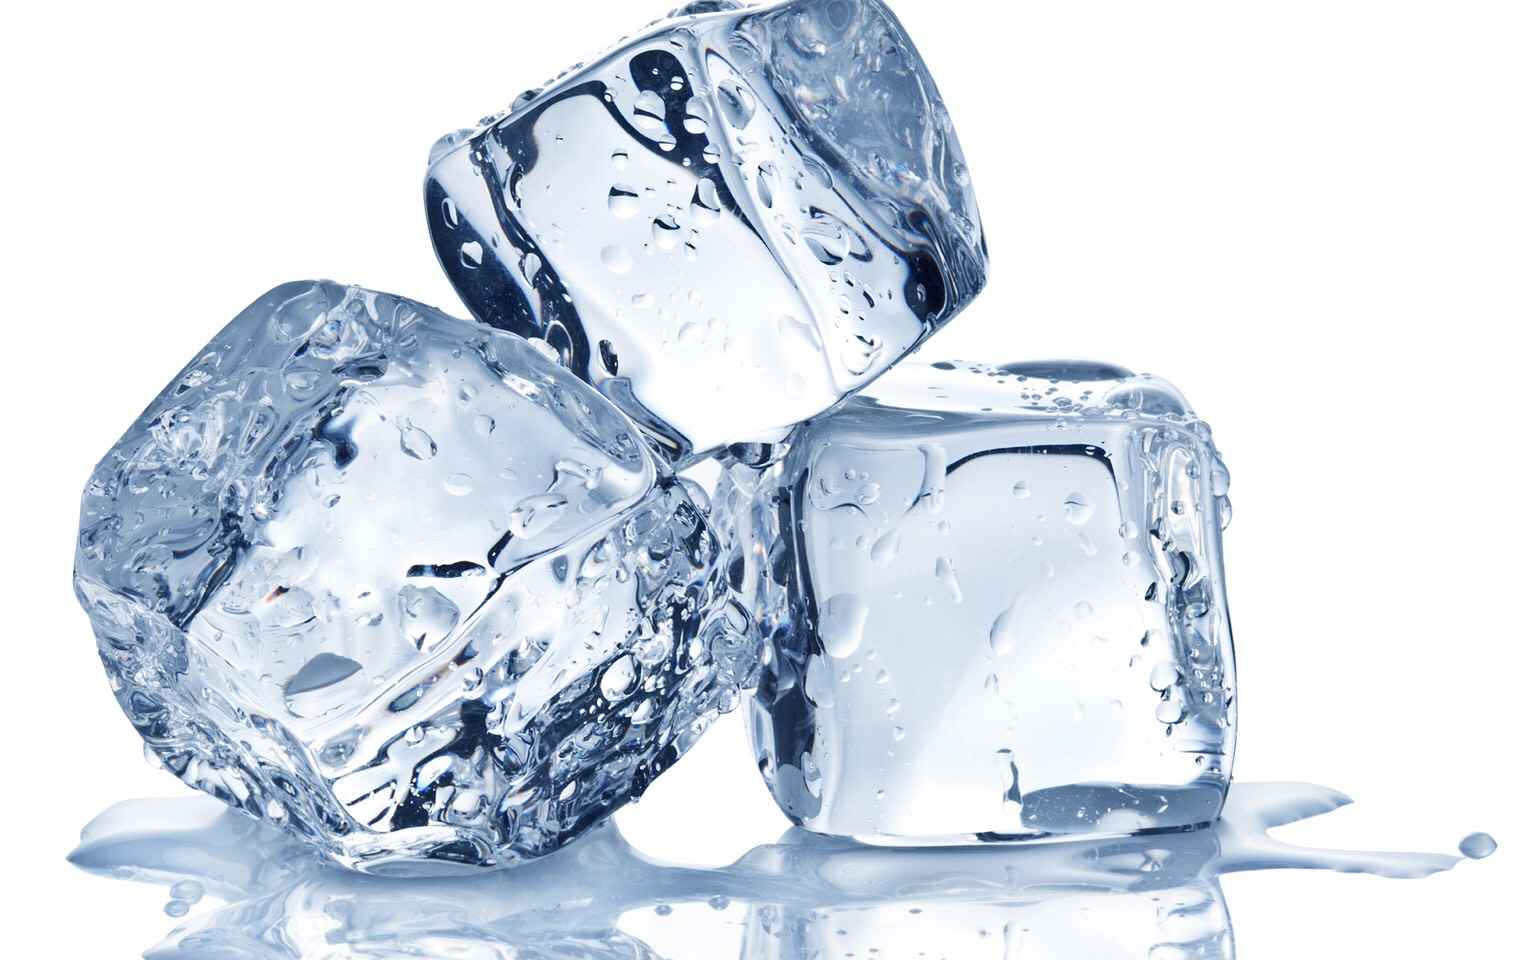 """1 cup- 3/2 cups if ice (depending on how """"icy"""" you want it to be)"""